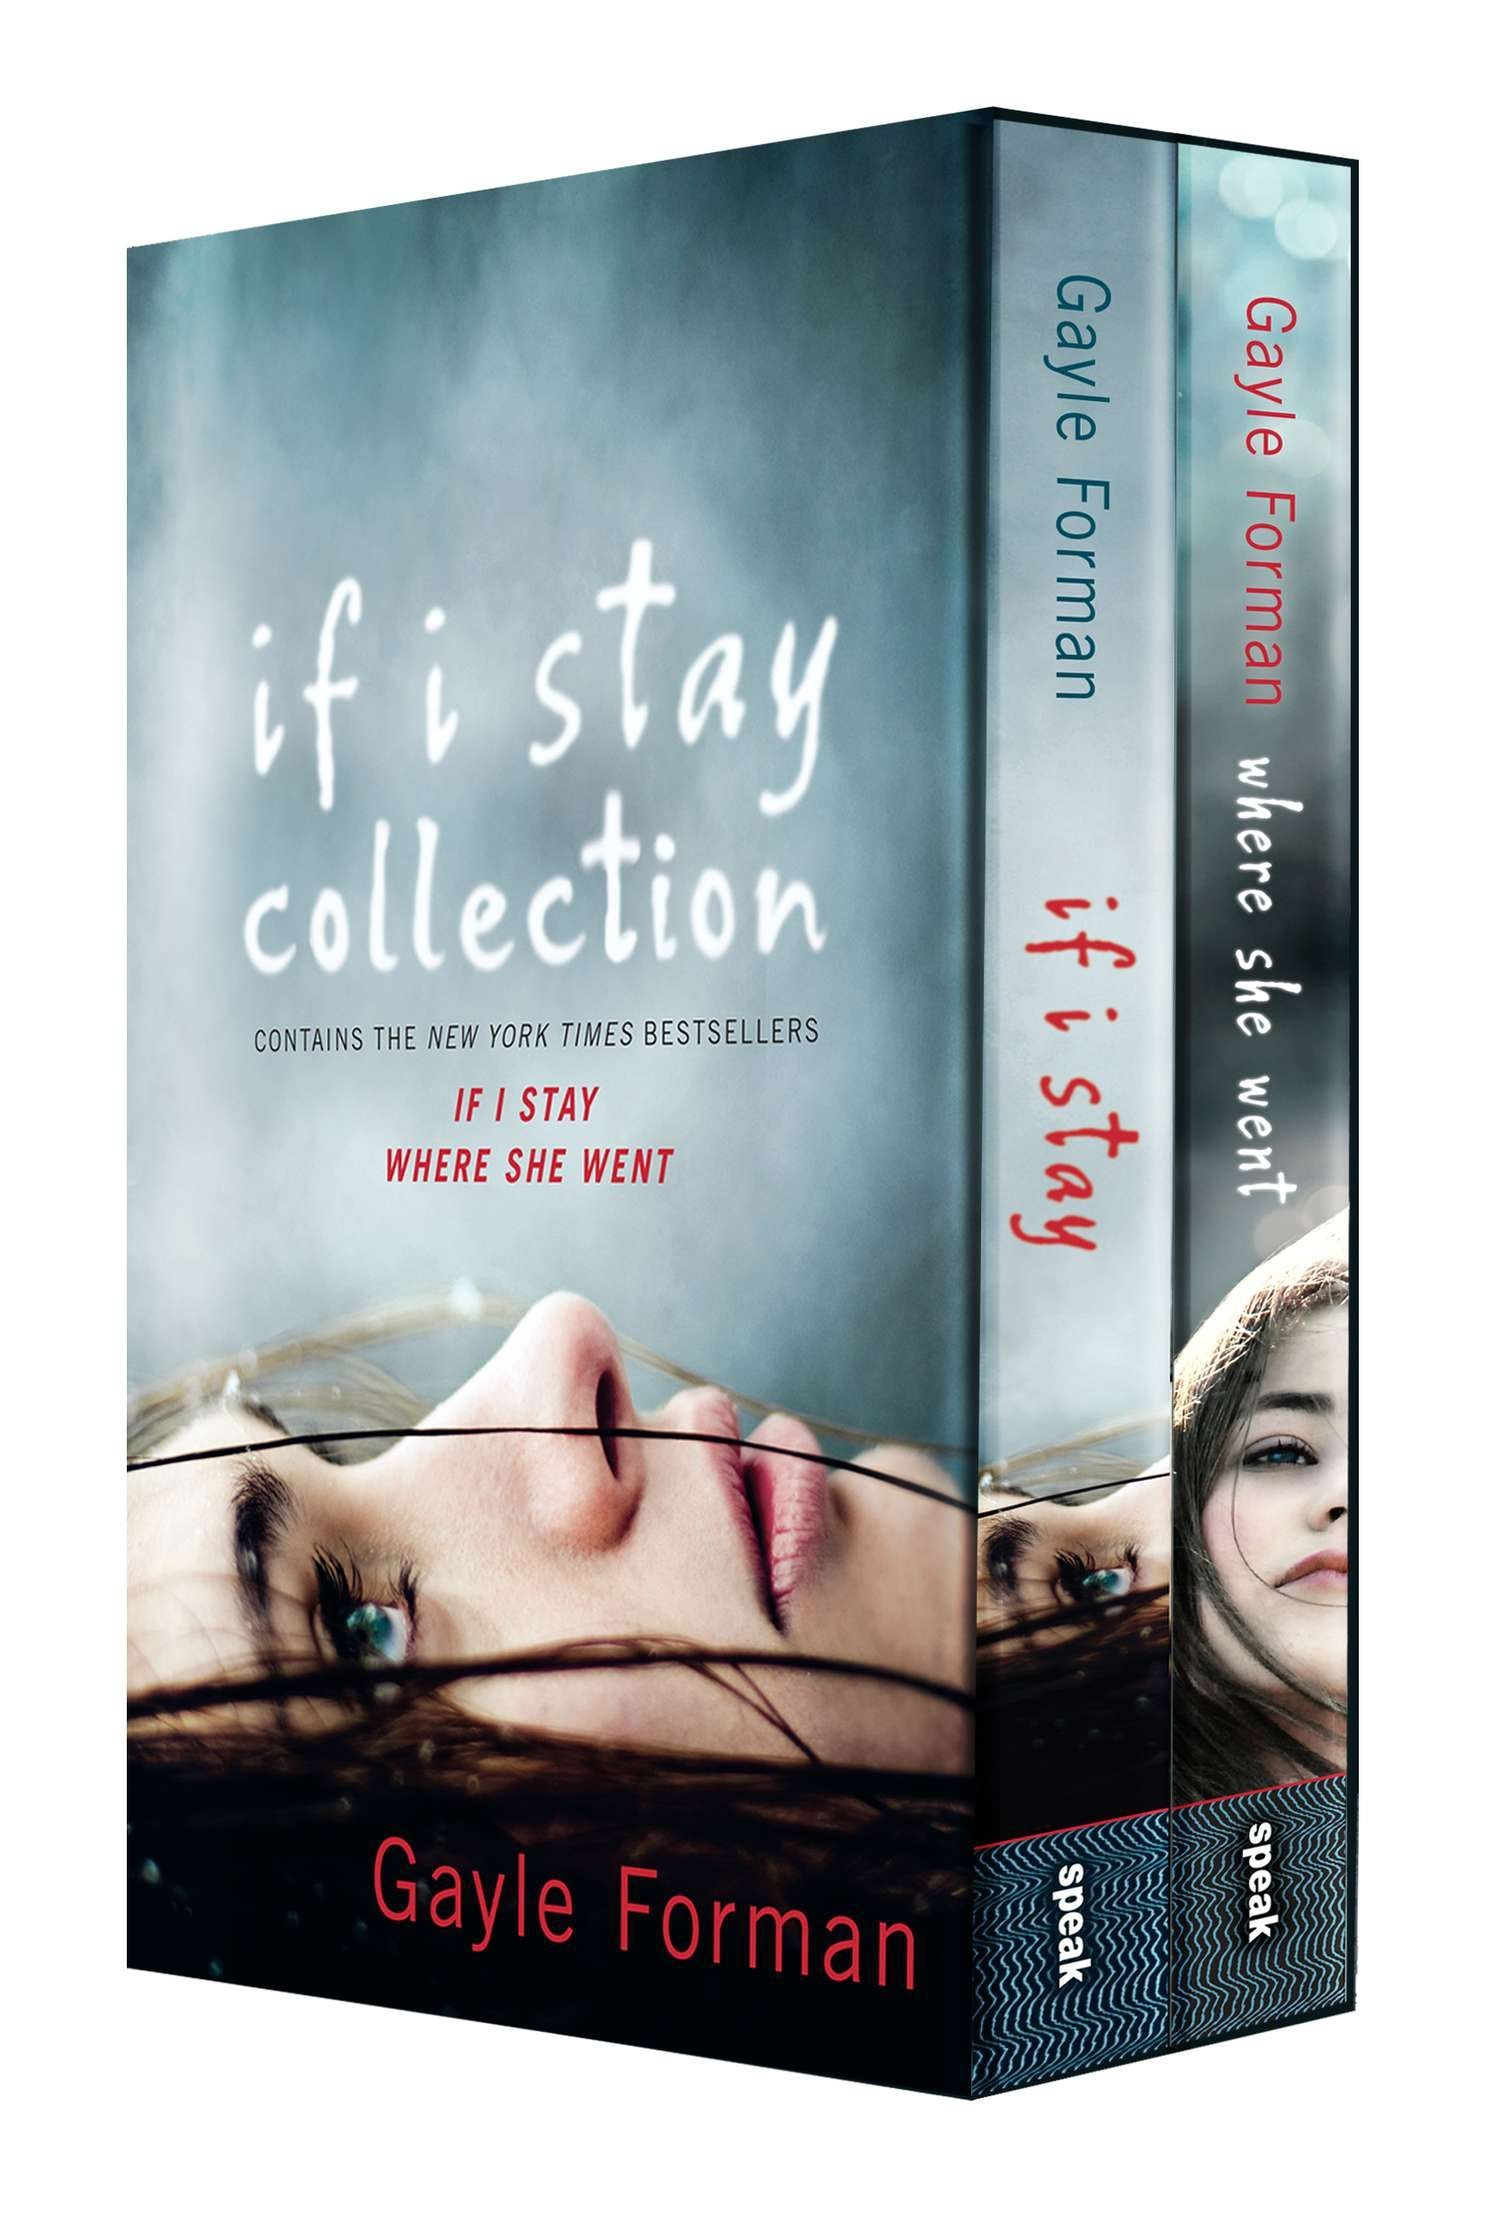 IF I STAY NOVEL EPUB DOWNLOAD